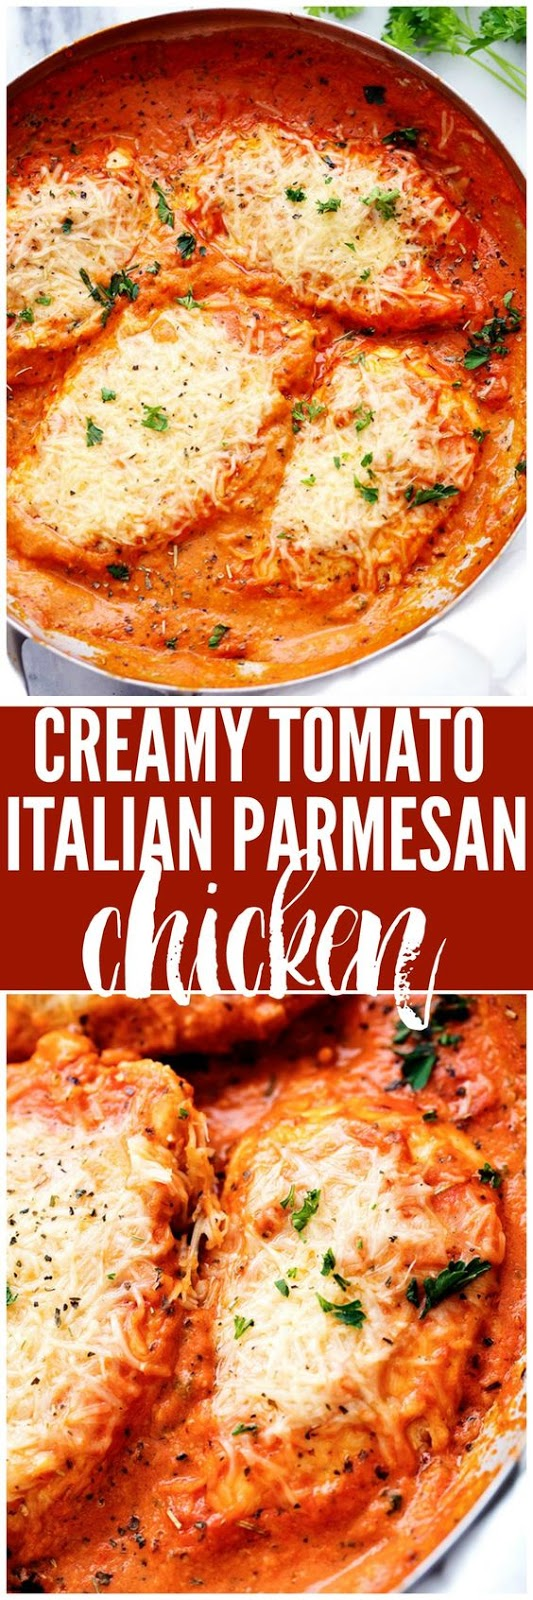 ★★★★☆ 7561 ratings | CREAMY TOMATO ITALIAN PARMESAN CHICKEN  #HEALTHYFOOD #EASYRECIPES #DINNER #LAUCH #DELICIOUS #EASY #HOLIDAYS #RECIPE #DESSERTS #SPECIALDIET #WORLDCUISINE #CAKE #APPETIZERS #HEALTHYRECIPES #DRINKS #COOKINGMETHOD #ITALIANRECIPES #MEAT #VEGANRECIPES #COOKIES #PASTA #FRUIT #SALAD #SOUPAPPETIZERS #NONALCOHOLICDRINKS #MEALPLANNING #VEGETABLES #SOUP #PASTRY #CHOCOLATE #DAIRY #ALCOHOLICDRINKS #BULGURSALAD #BAKING #SNACKS #BEEFRECIPES #MEATAPPETIZERS #MEXICANRECIPES #BREAD #ASIANRECIPES #SEAFOODAPPETIZERS #MUFFINS #BREAKFASTANDBRUNCH #CONDIMENTS #CUPCAKES #CHEESE #CHICKENRECIPES #PIE #COFFEE #NOBAKEDESSERTS #HEALTHYSNACKS #SEAFOOD #GRAIN #LUNCHESDINNERS #MEXICAN #QUICKBREAD #LIQUOR